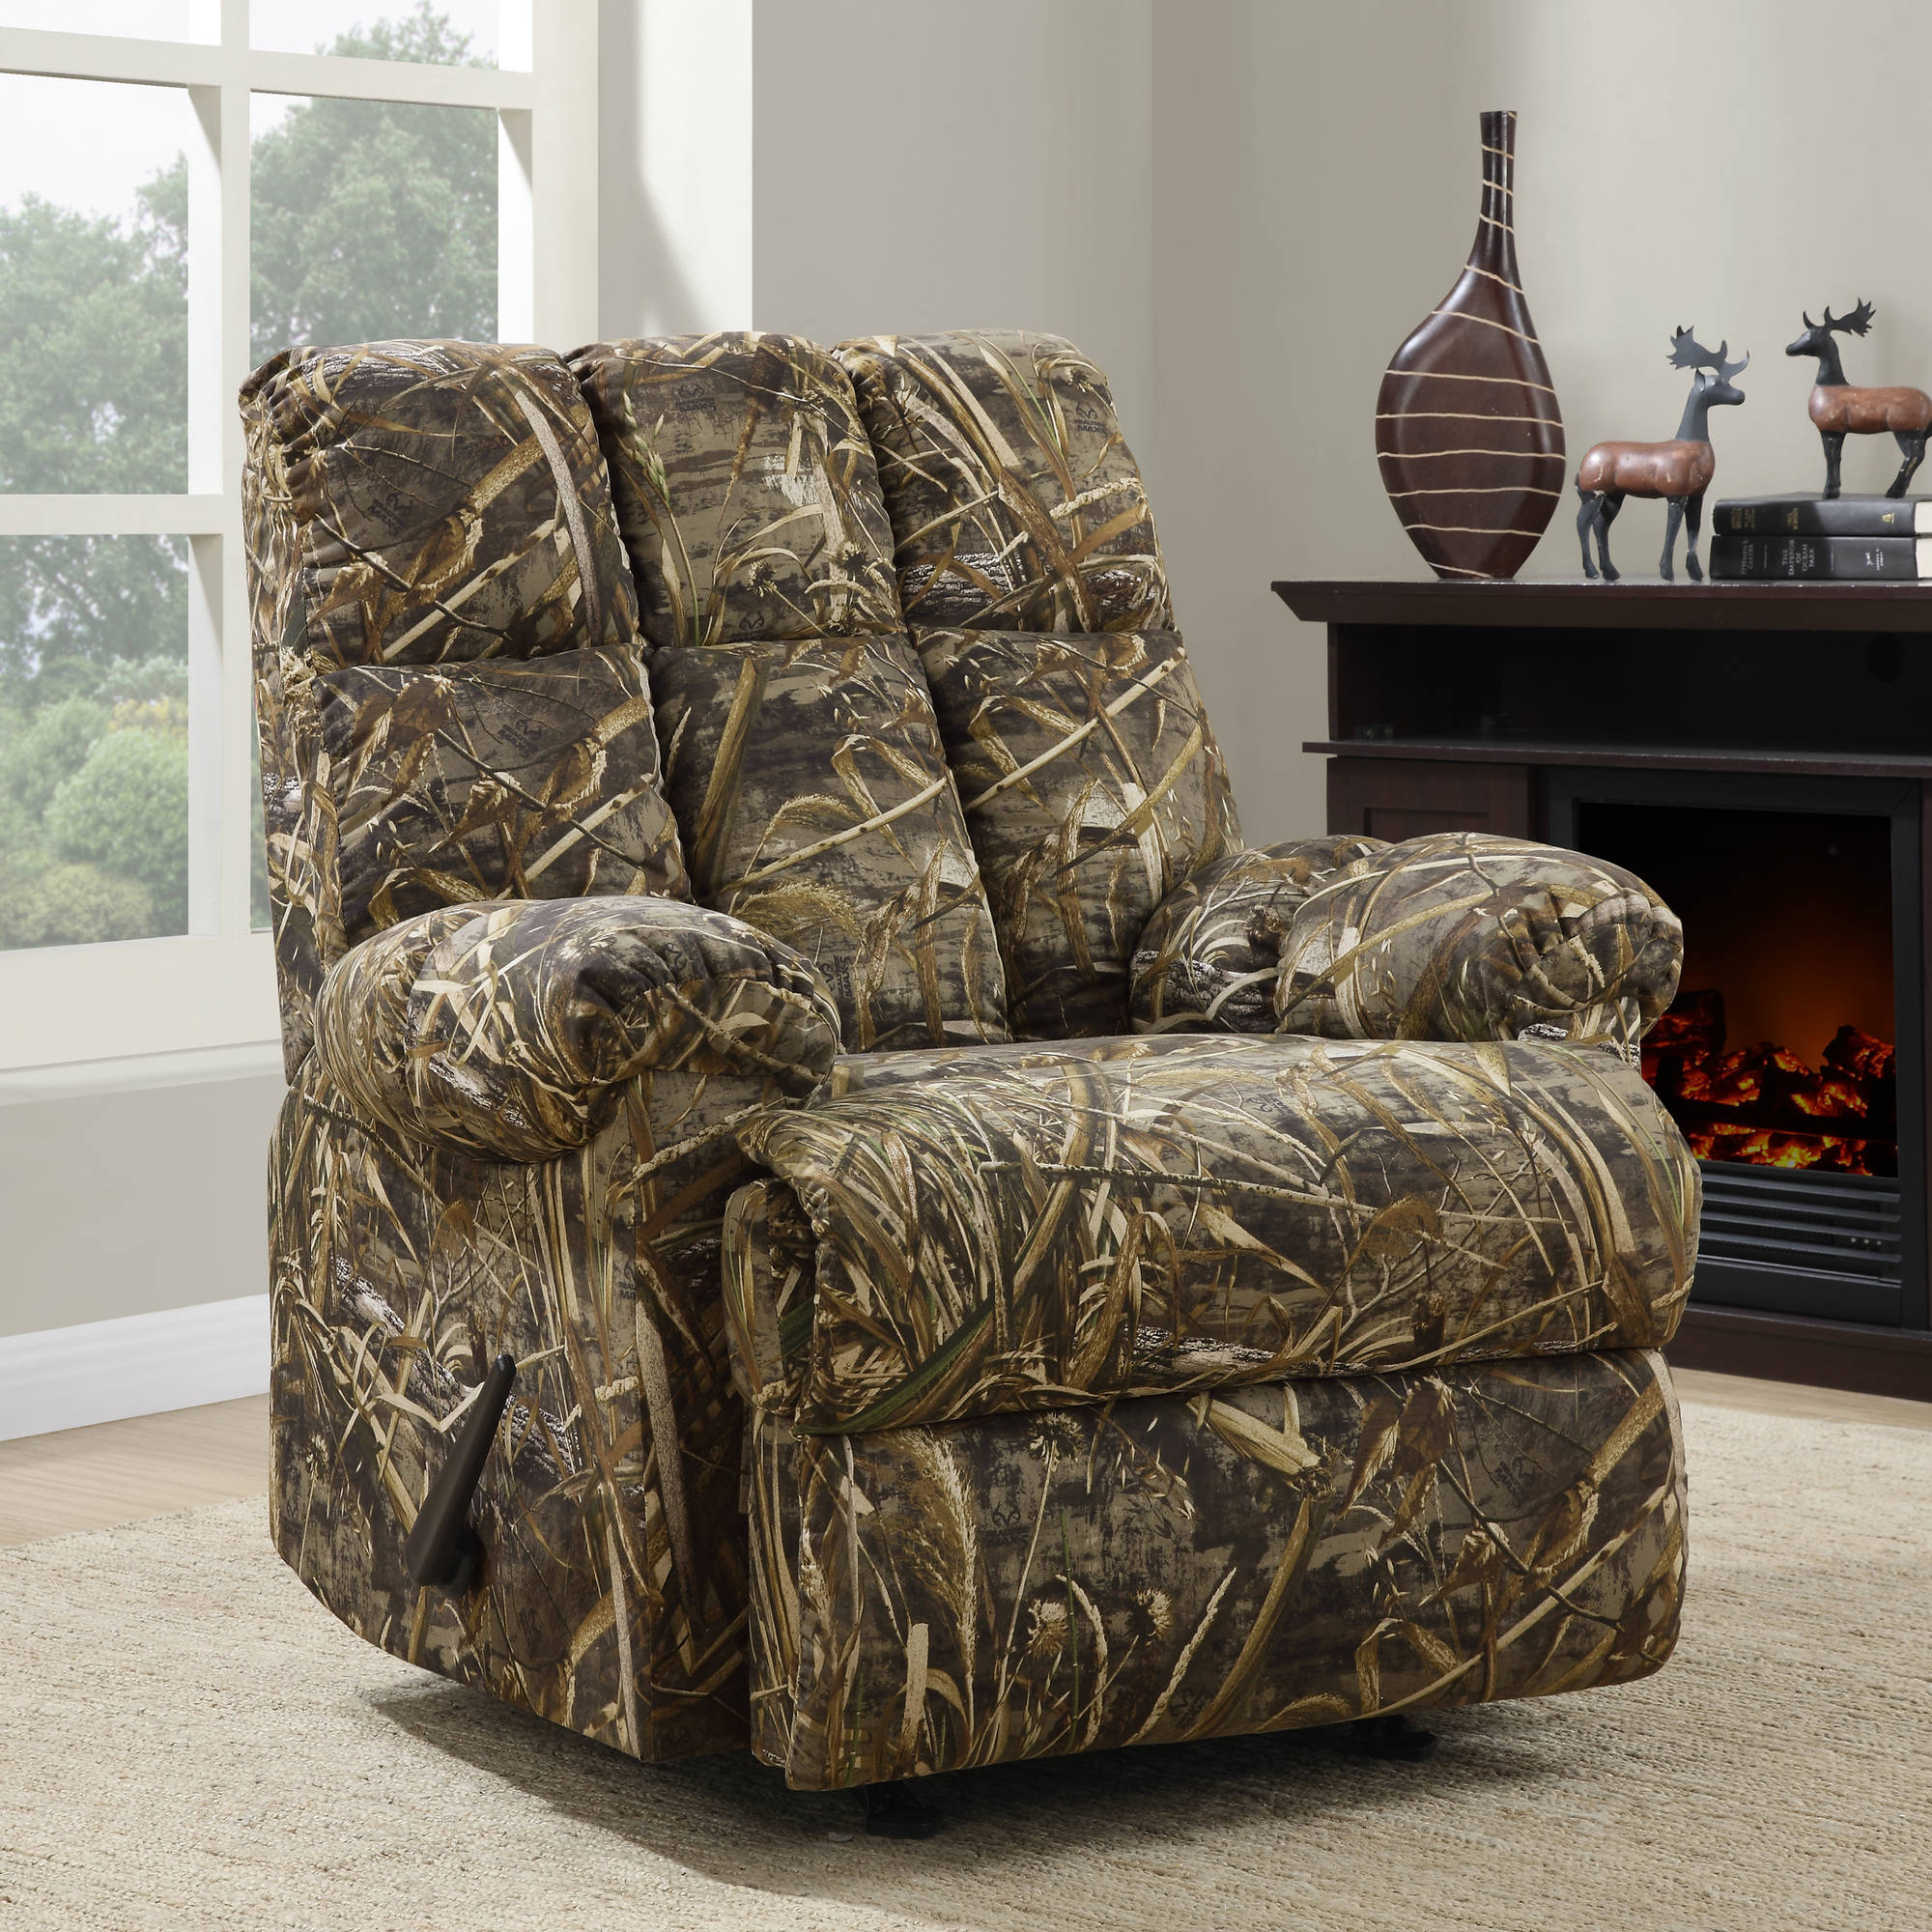 Rocker Recliner Chair Rustic Camouflage Man Cave Cabin